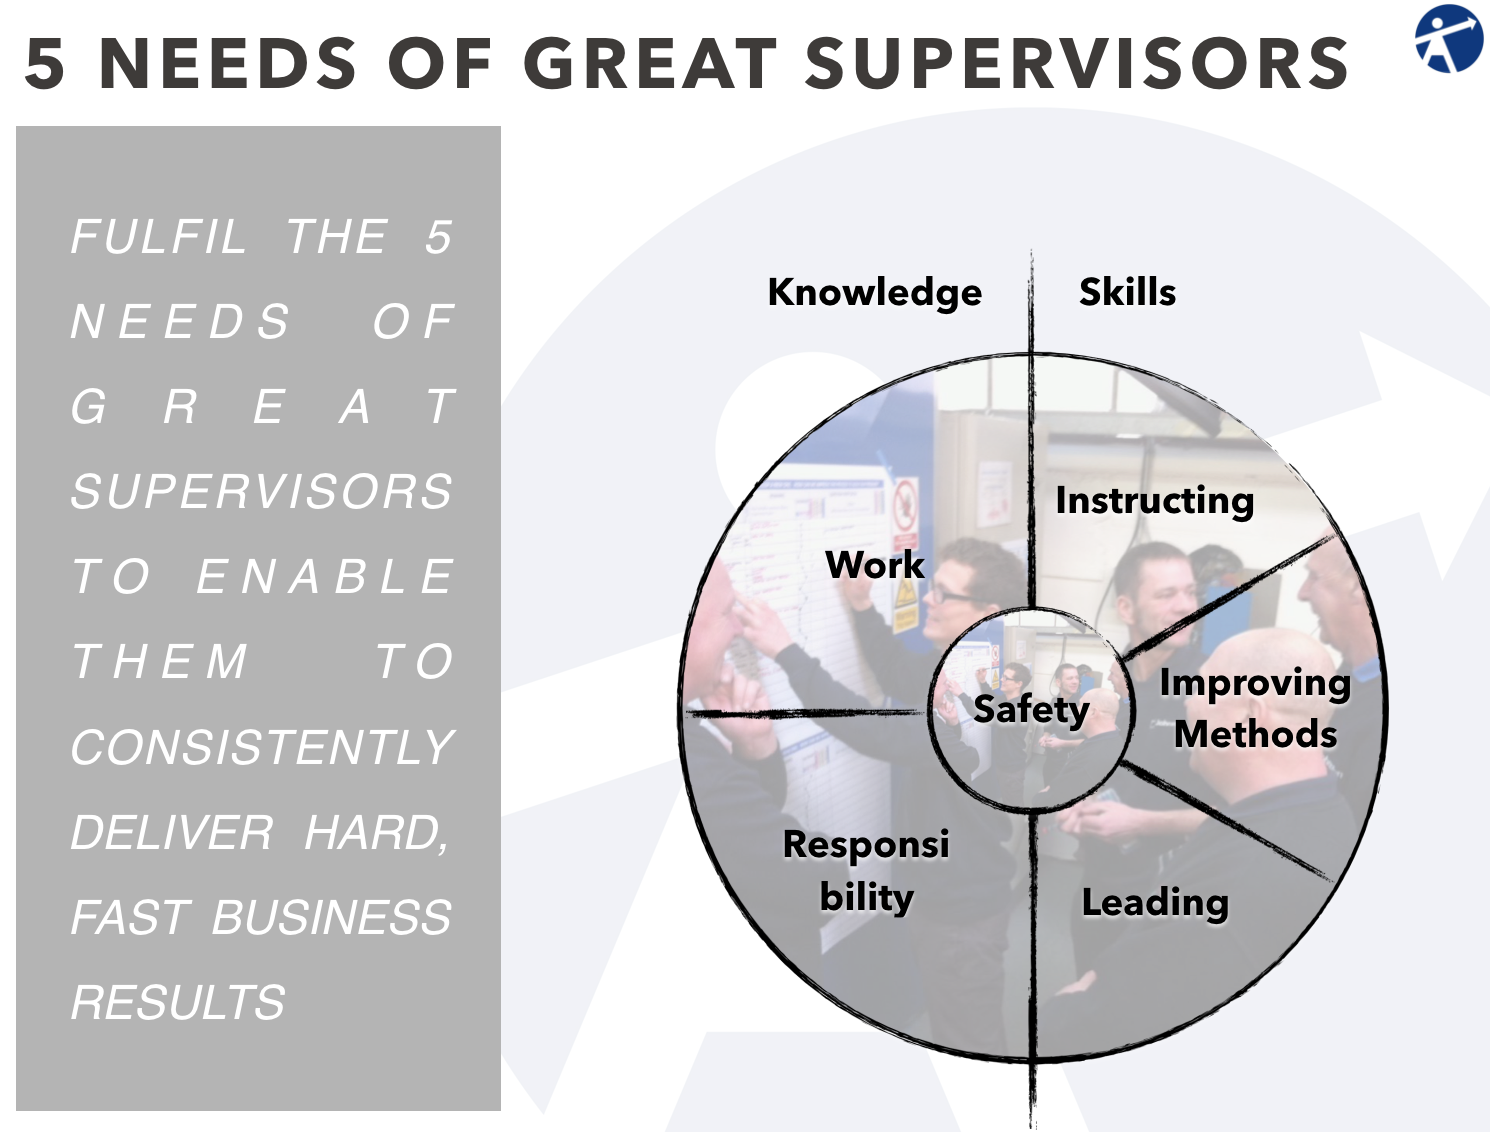 5 Needs of Great Supervisors.png